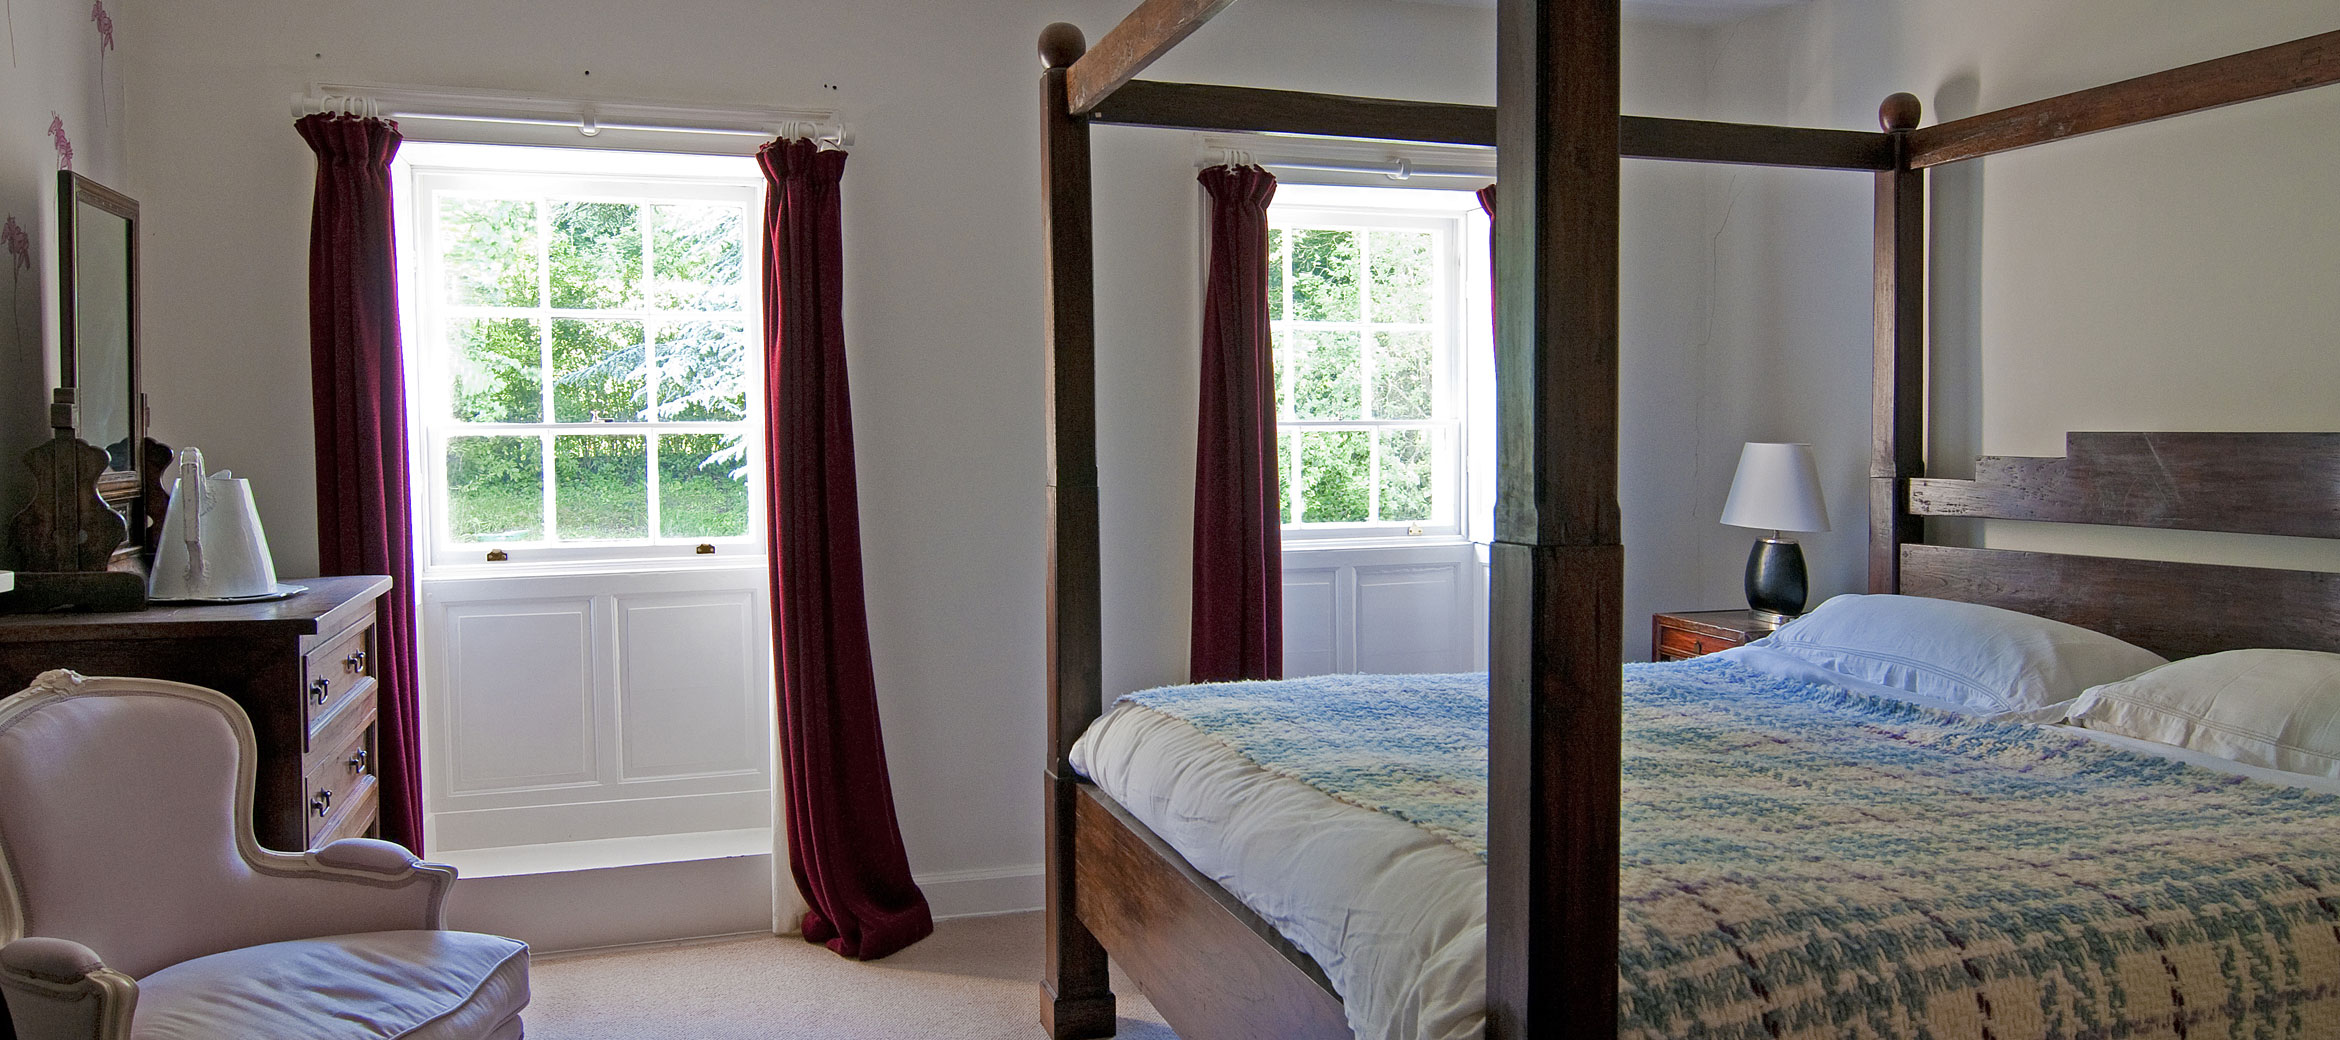 sheepscombe-house-four-poster-bedroom